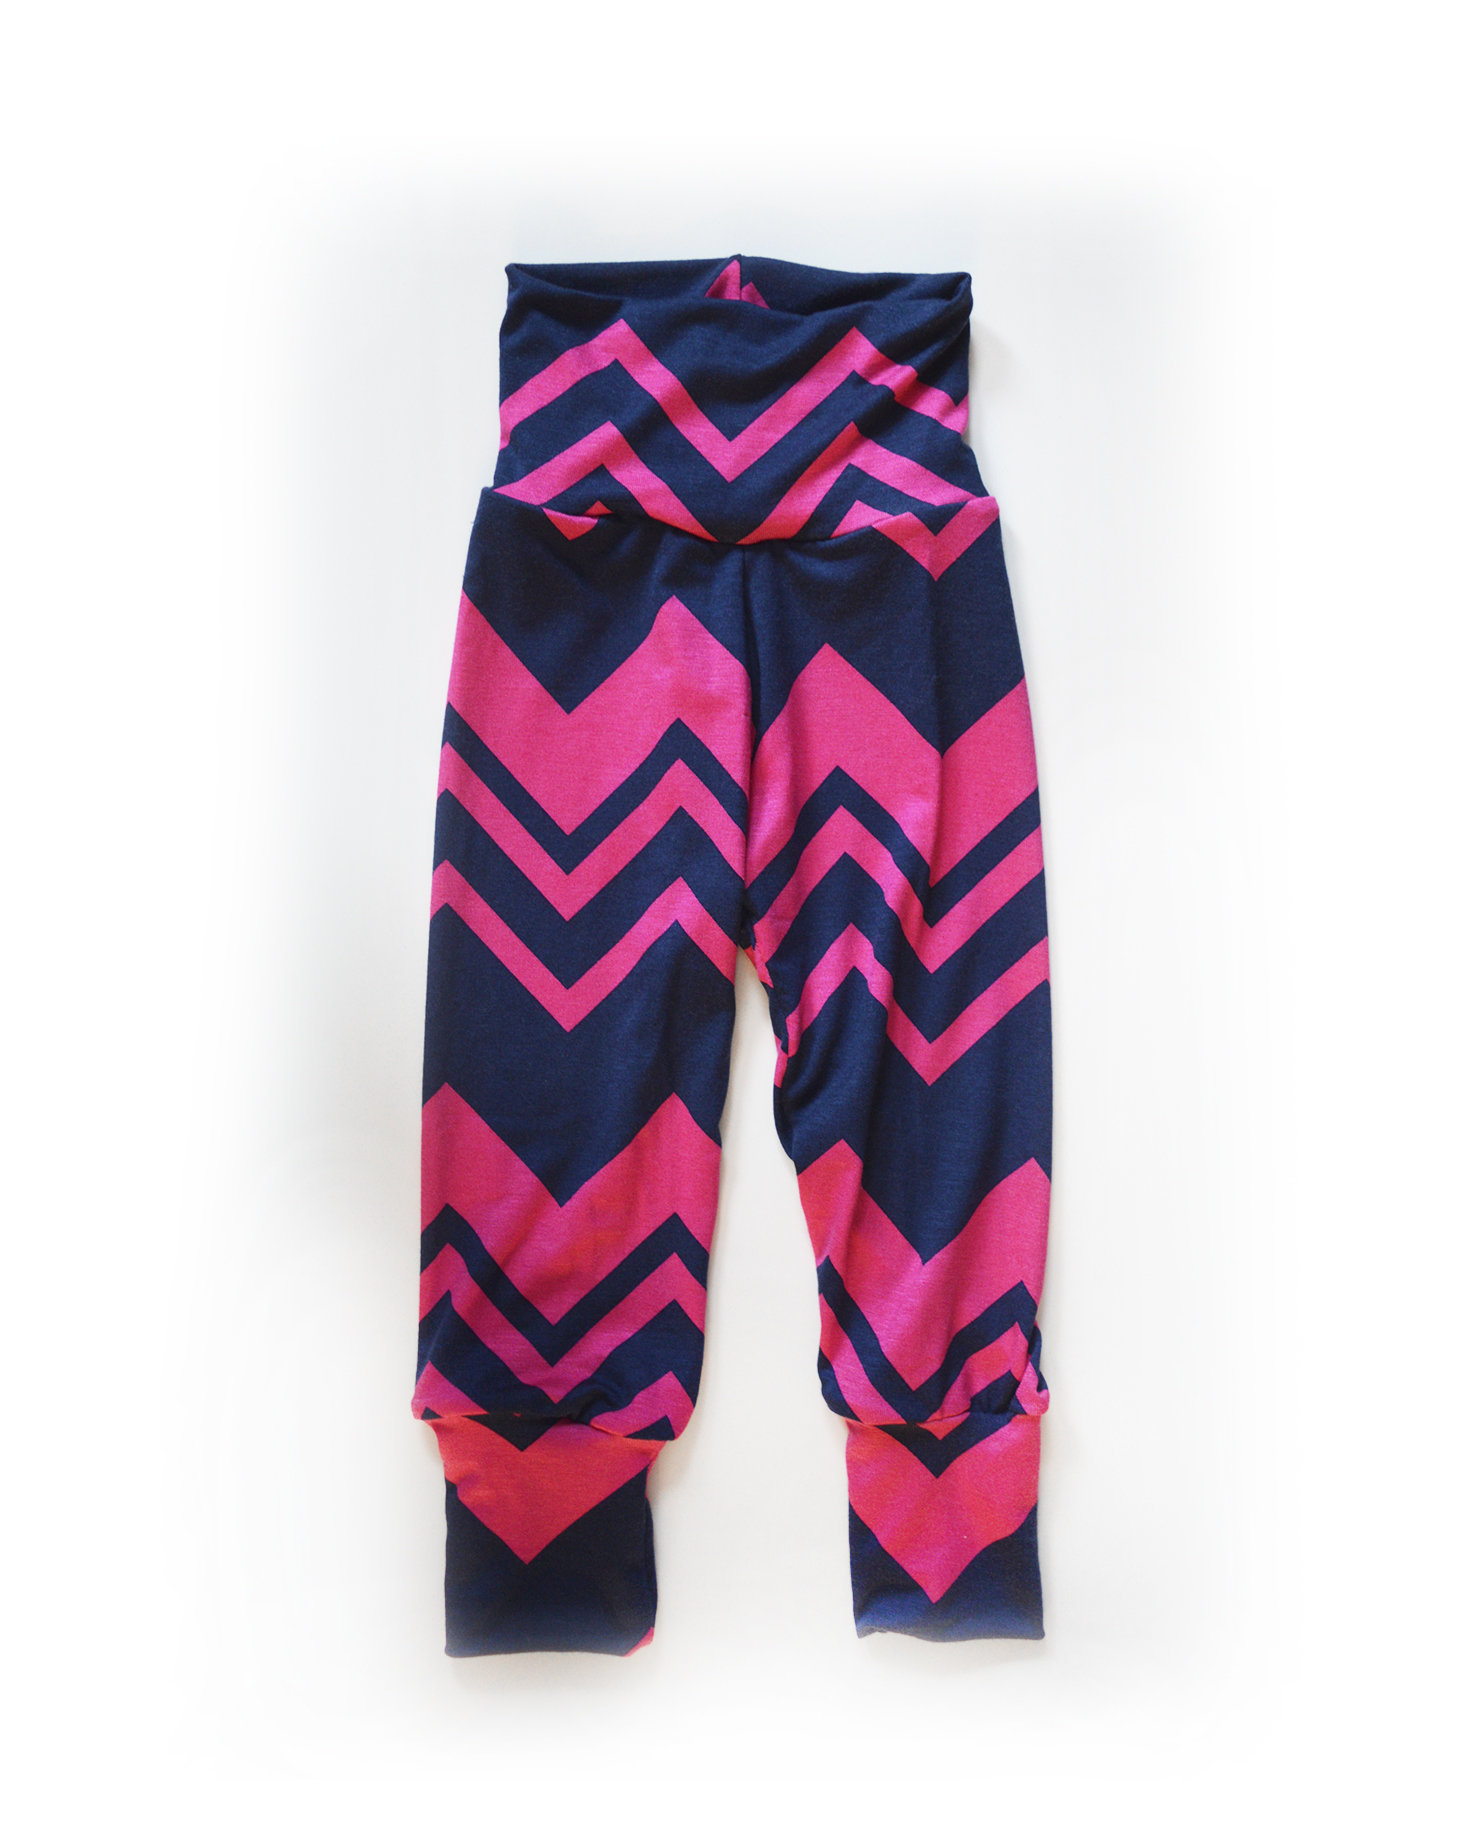 Little Sprout Pants™ Navy Pink Chevron - Stretch Fit regular 00478